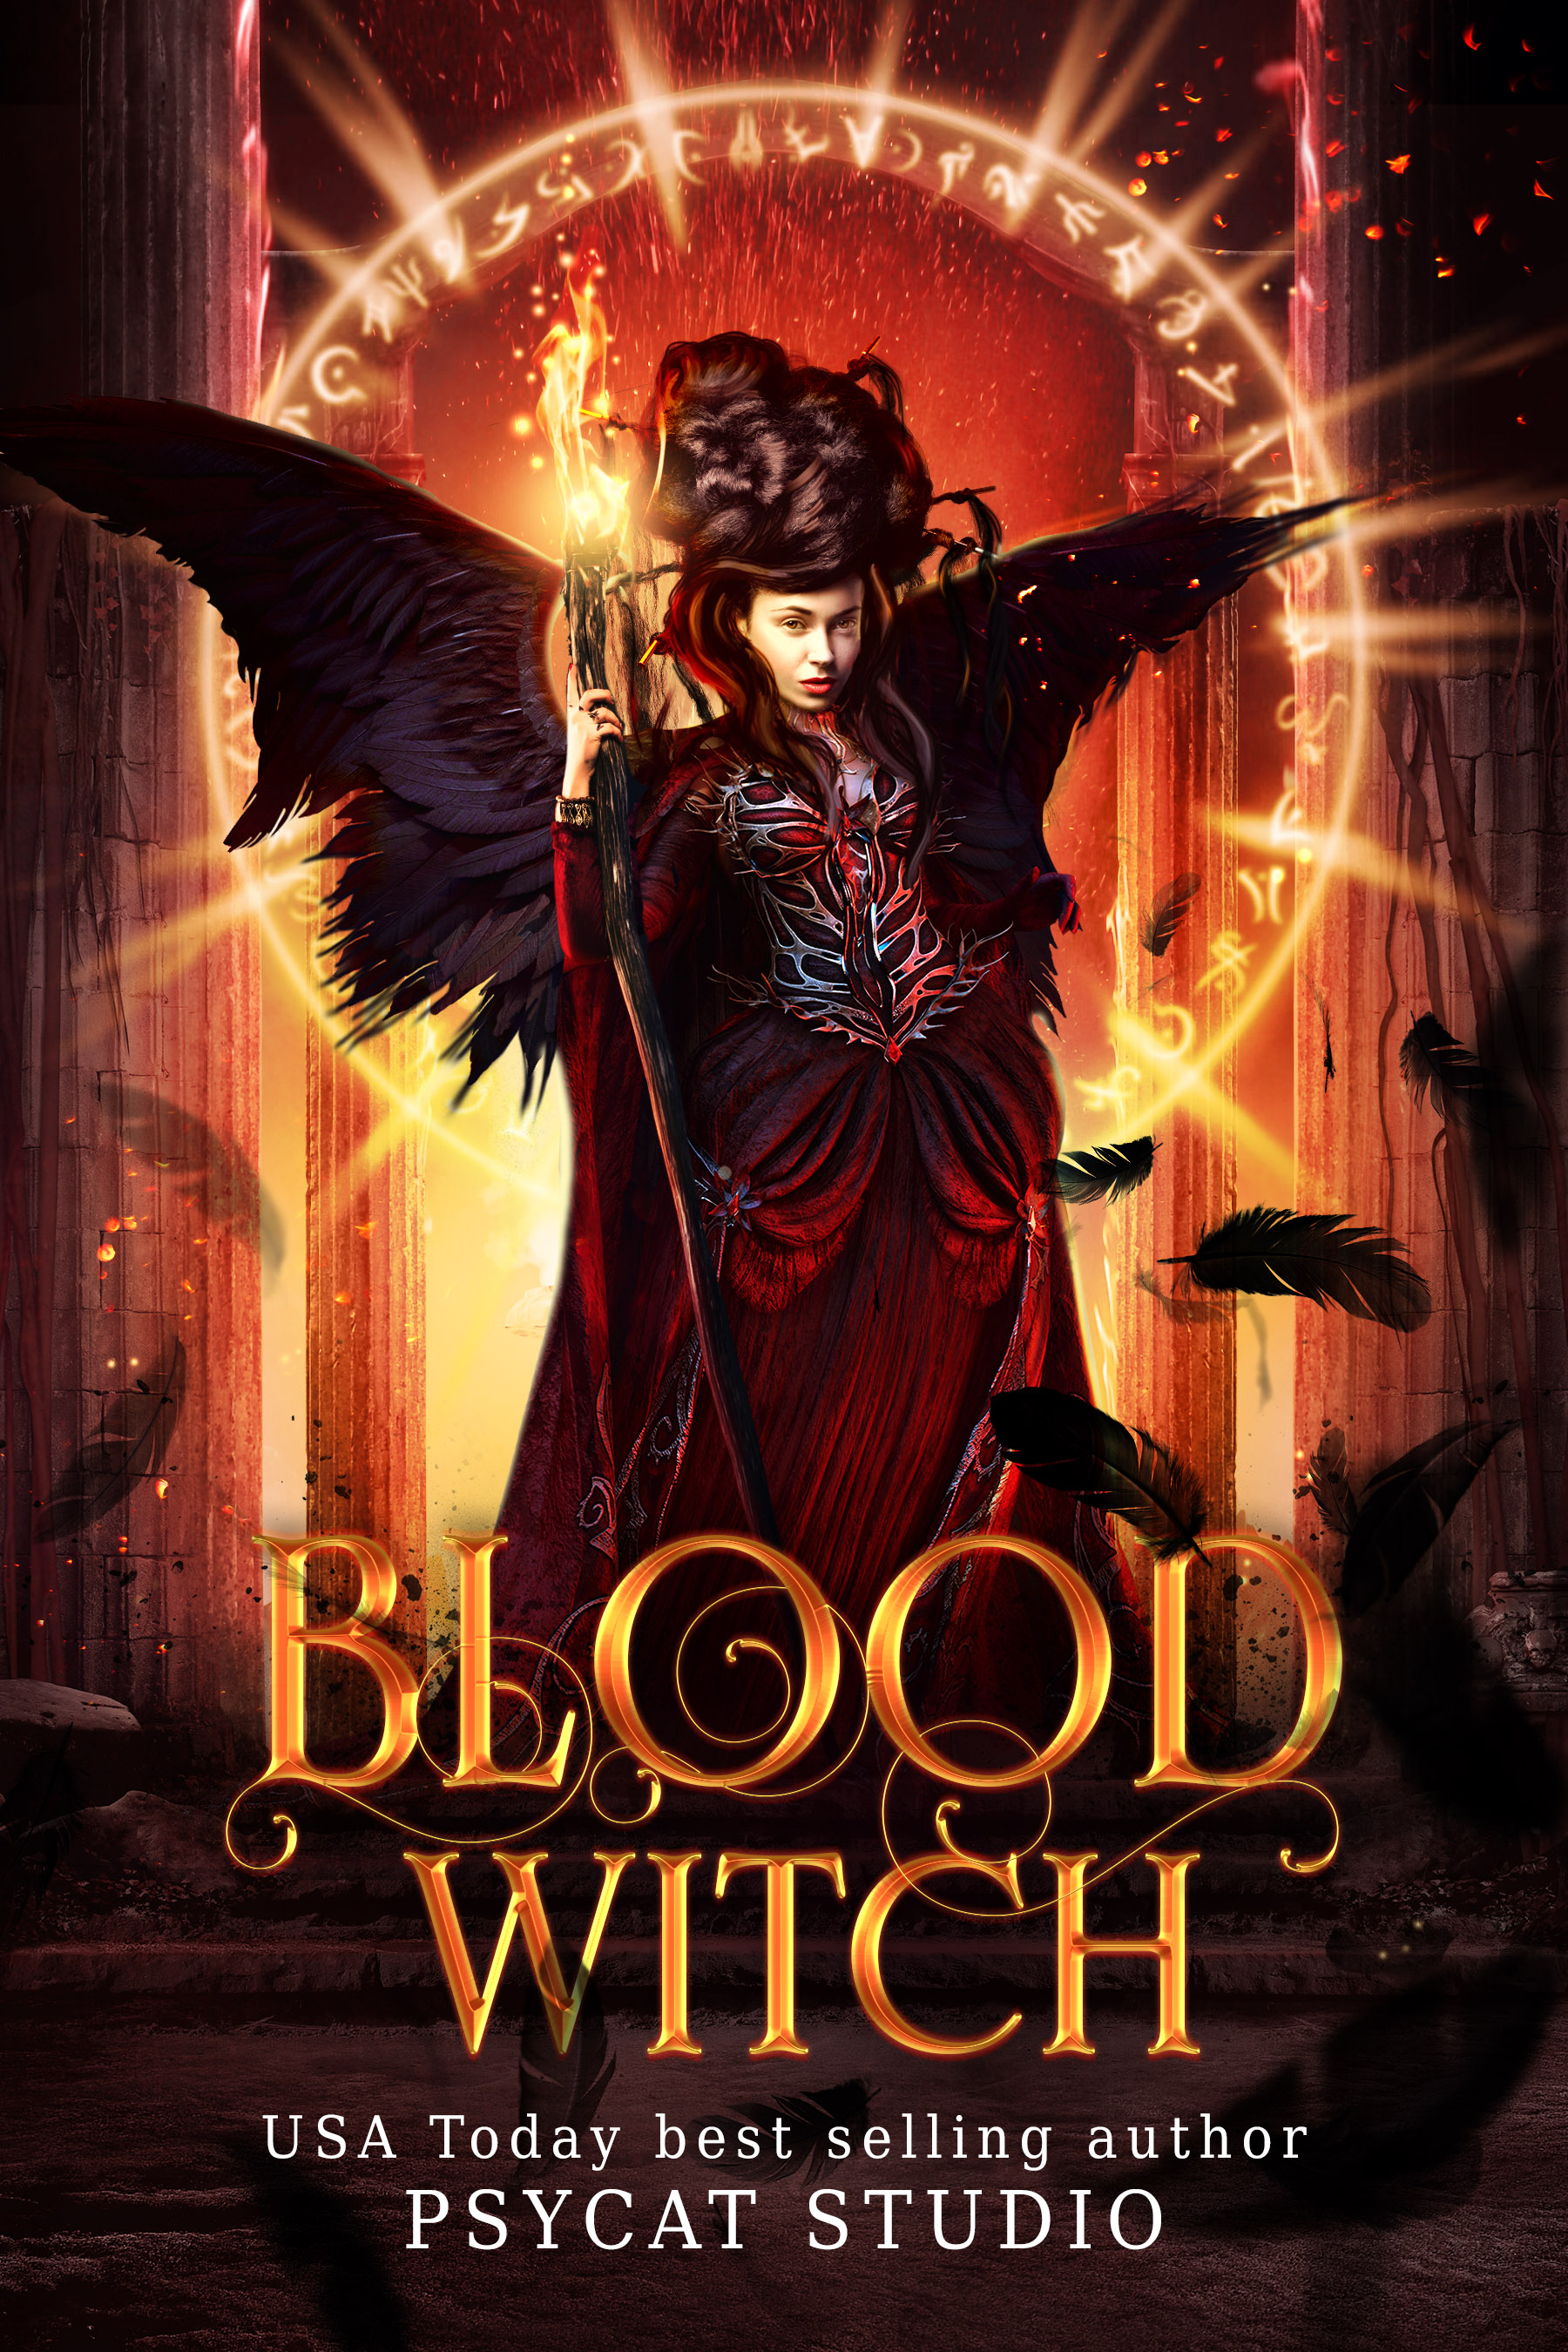 1002_BloodWitch_s01_v01